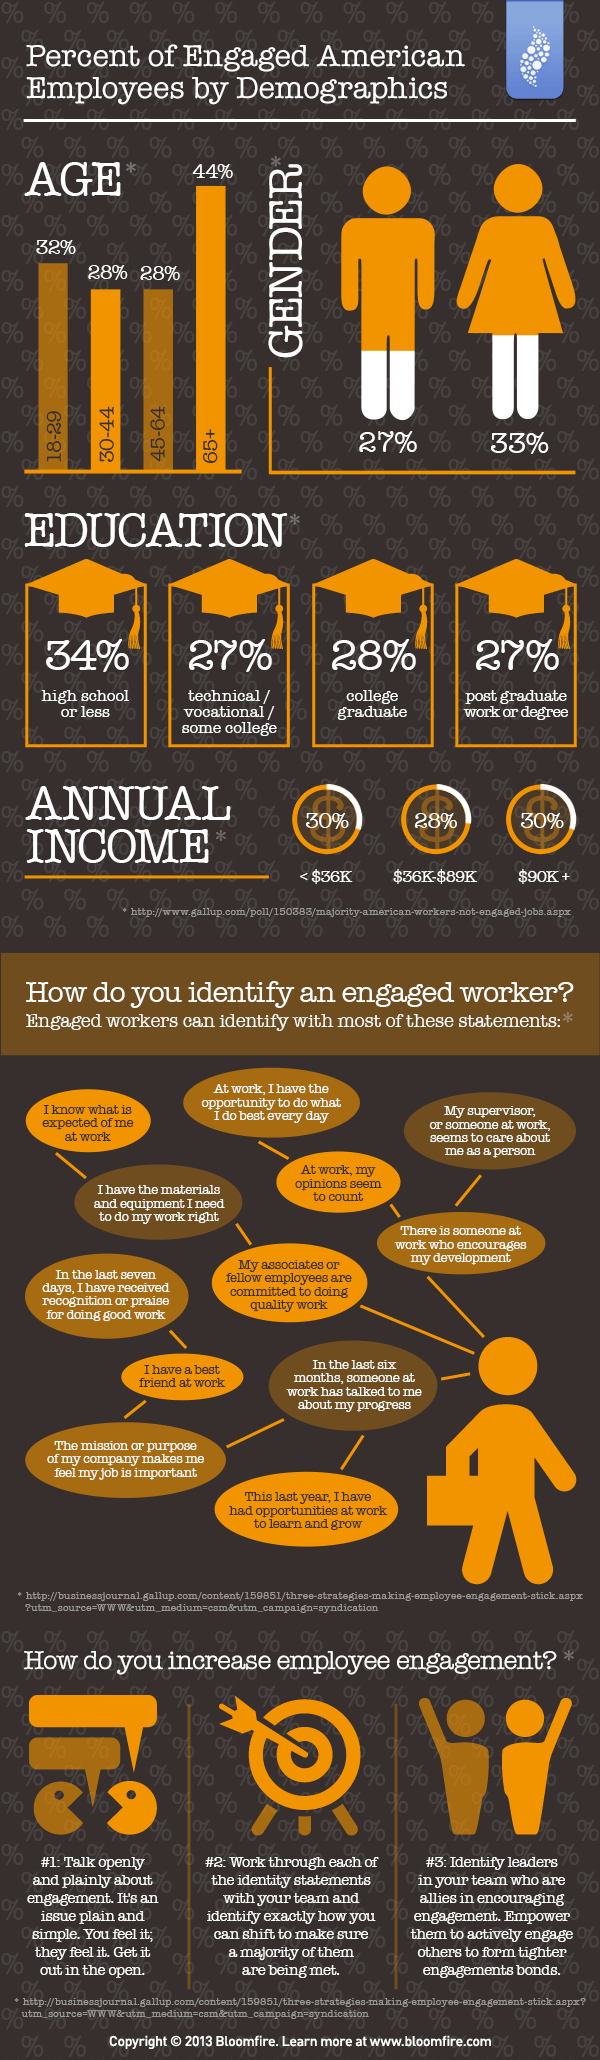 Engaged Employees Come in All Shapes and Sizes | #infographic by @bloomfire